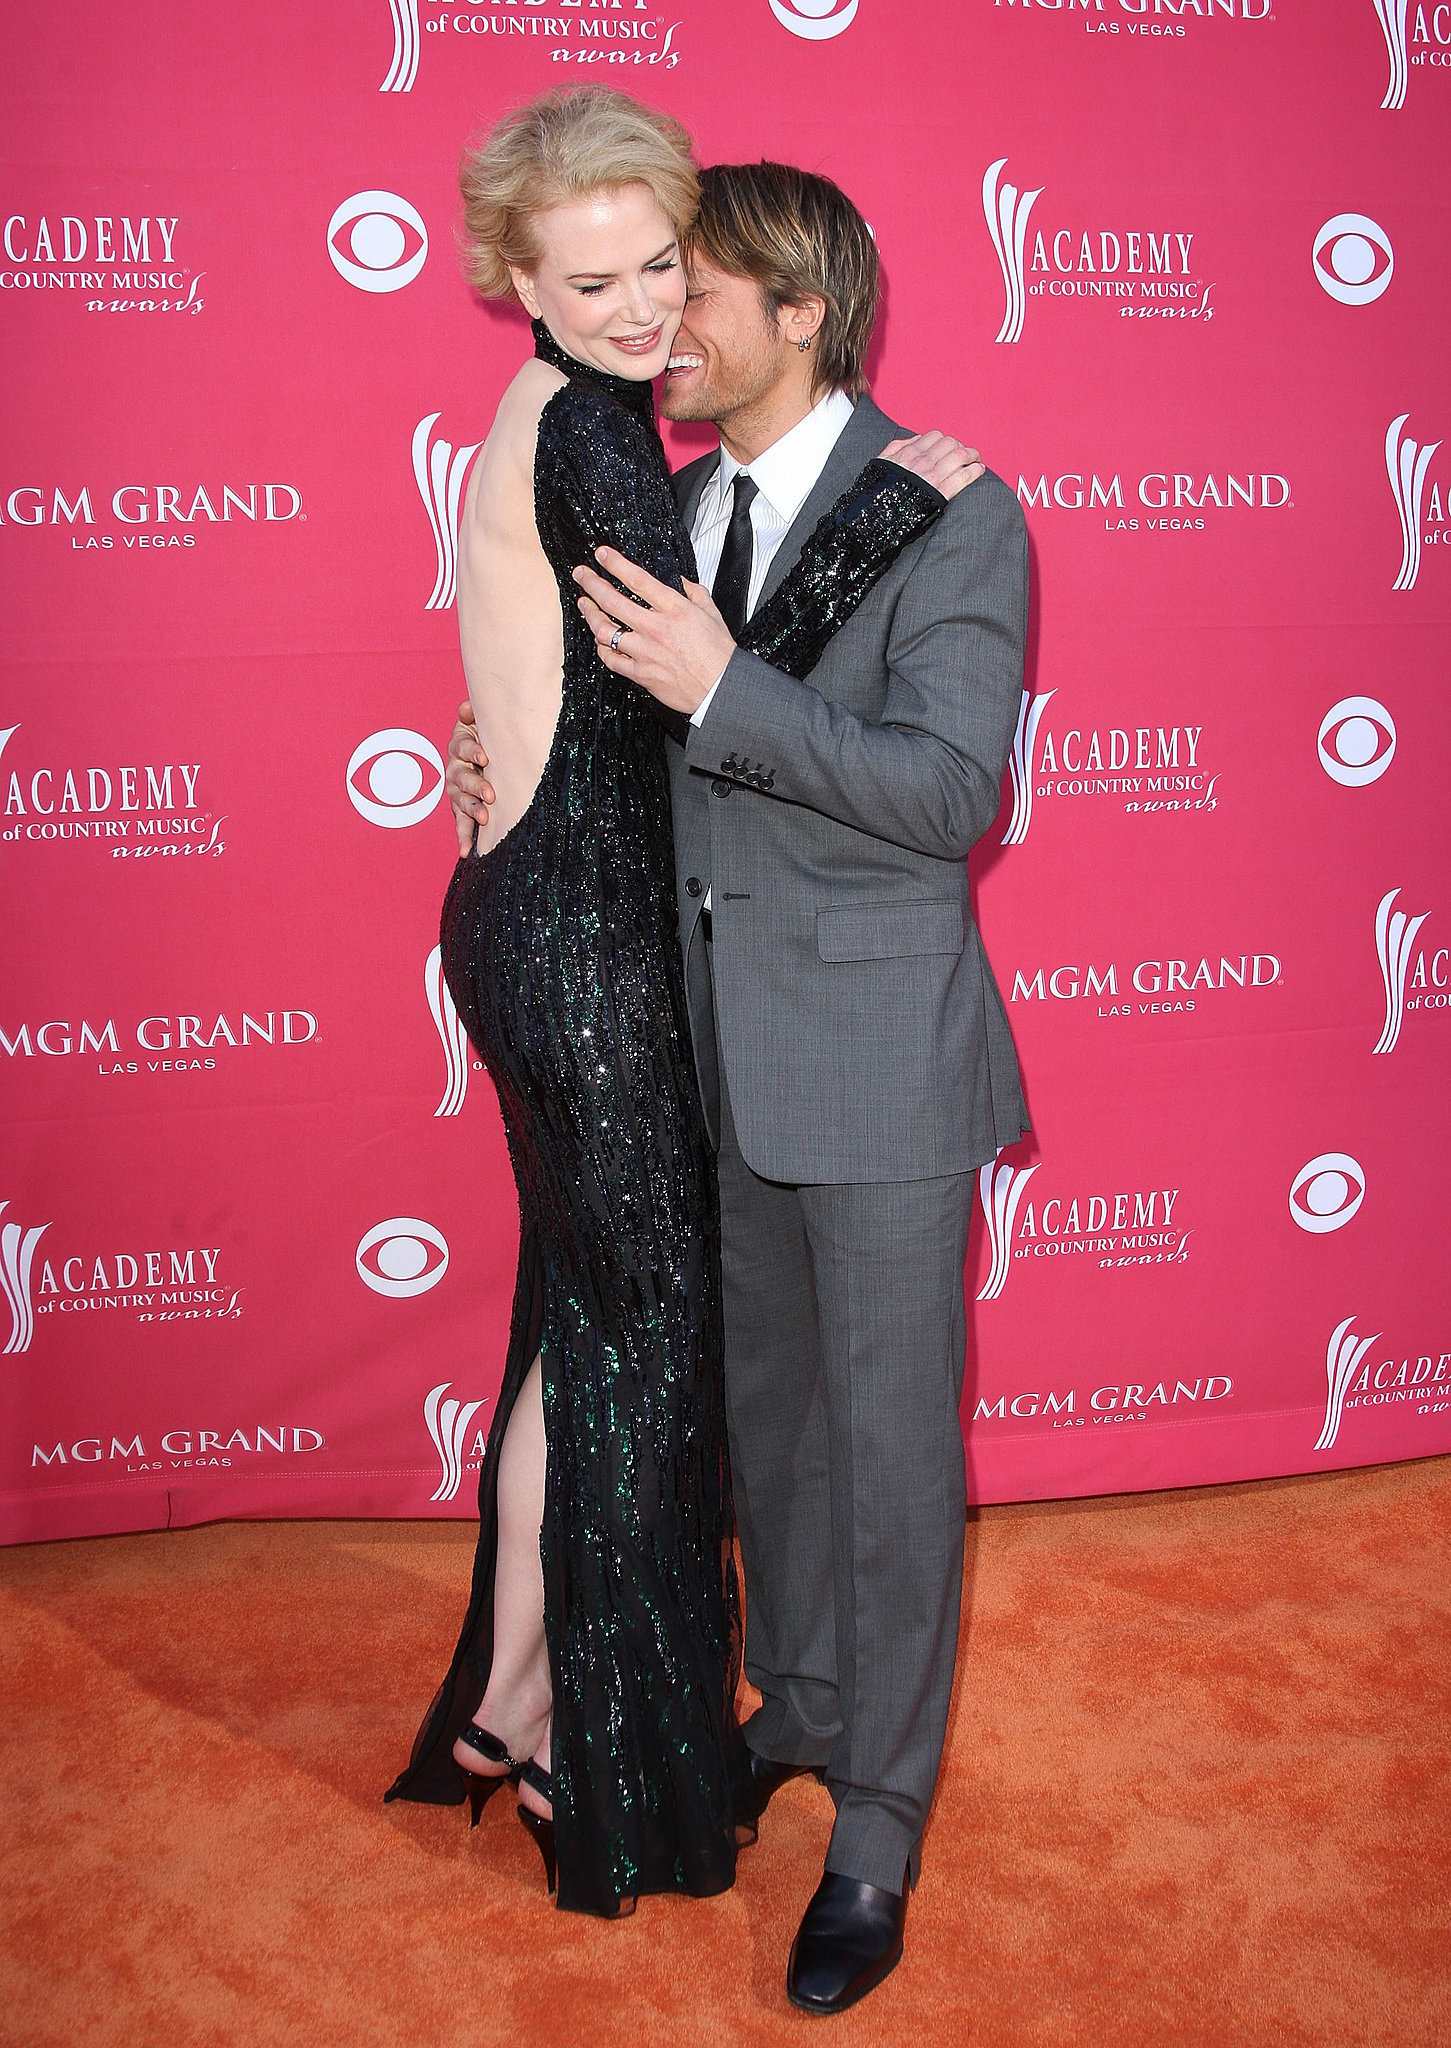 Keith nuzzled Nicole in April 2009 at the ACM Awards in Las Vegas.